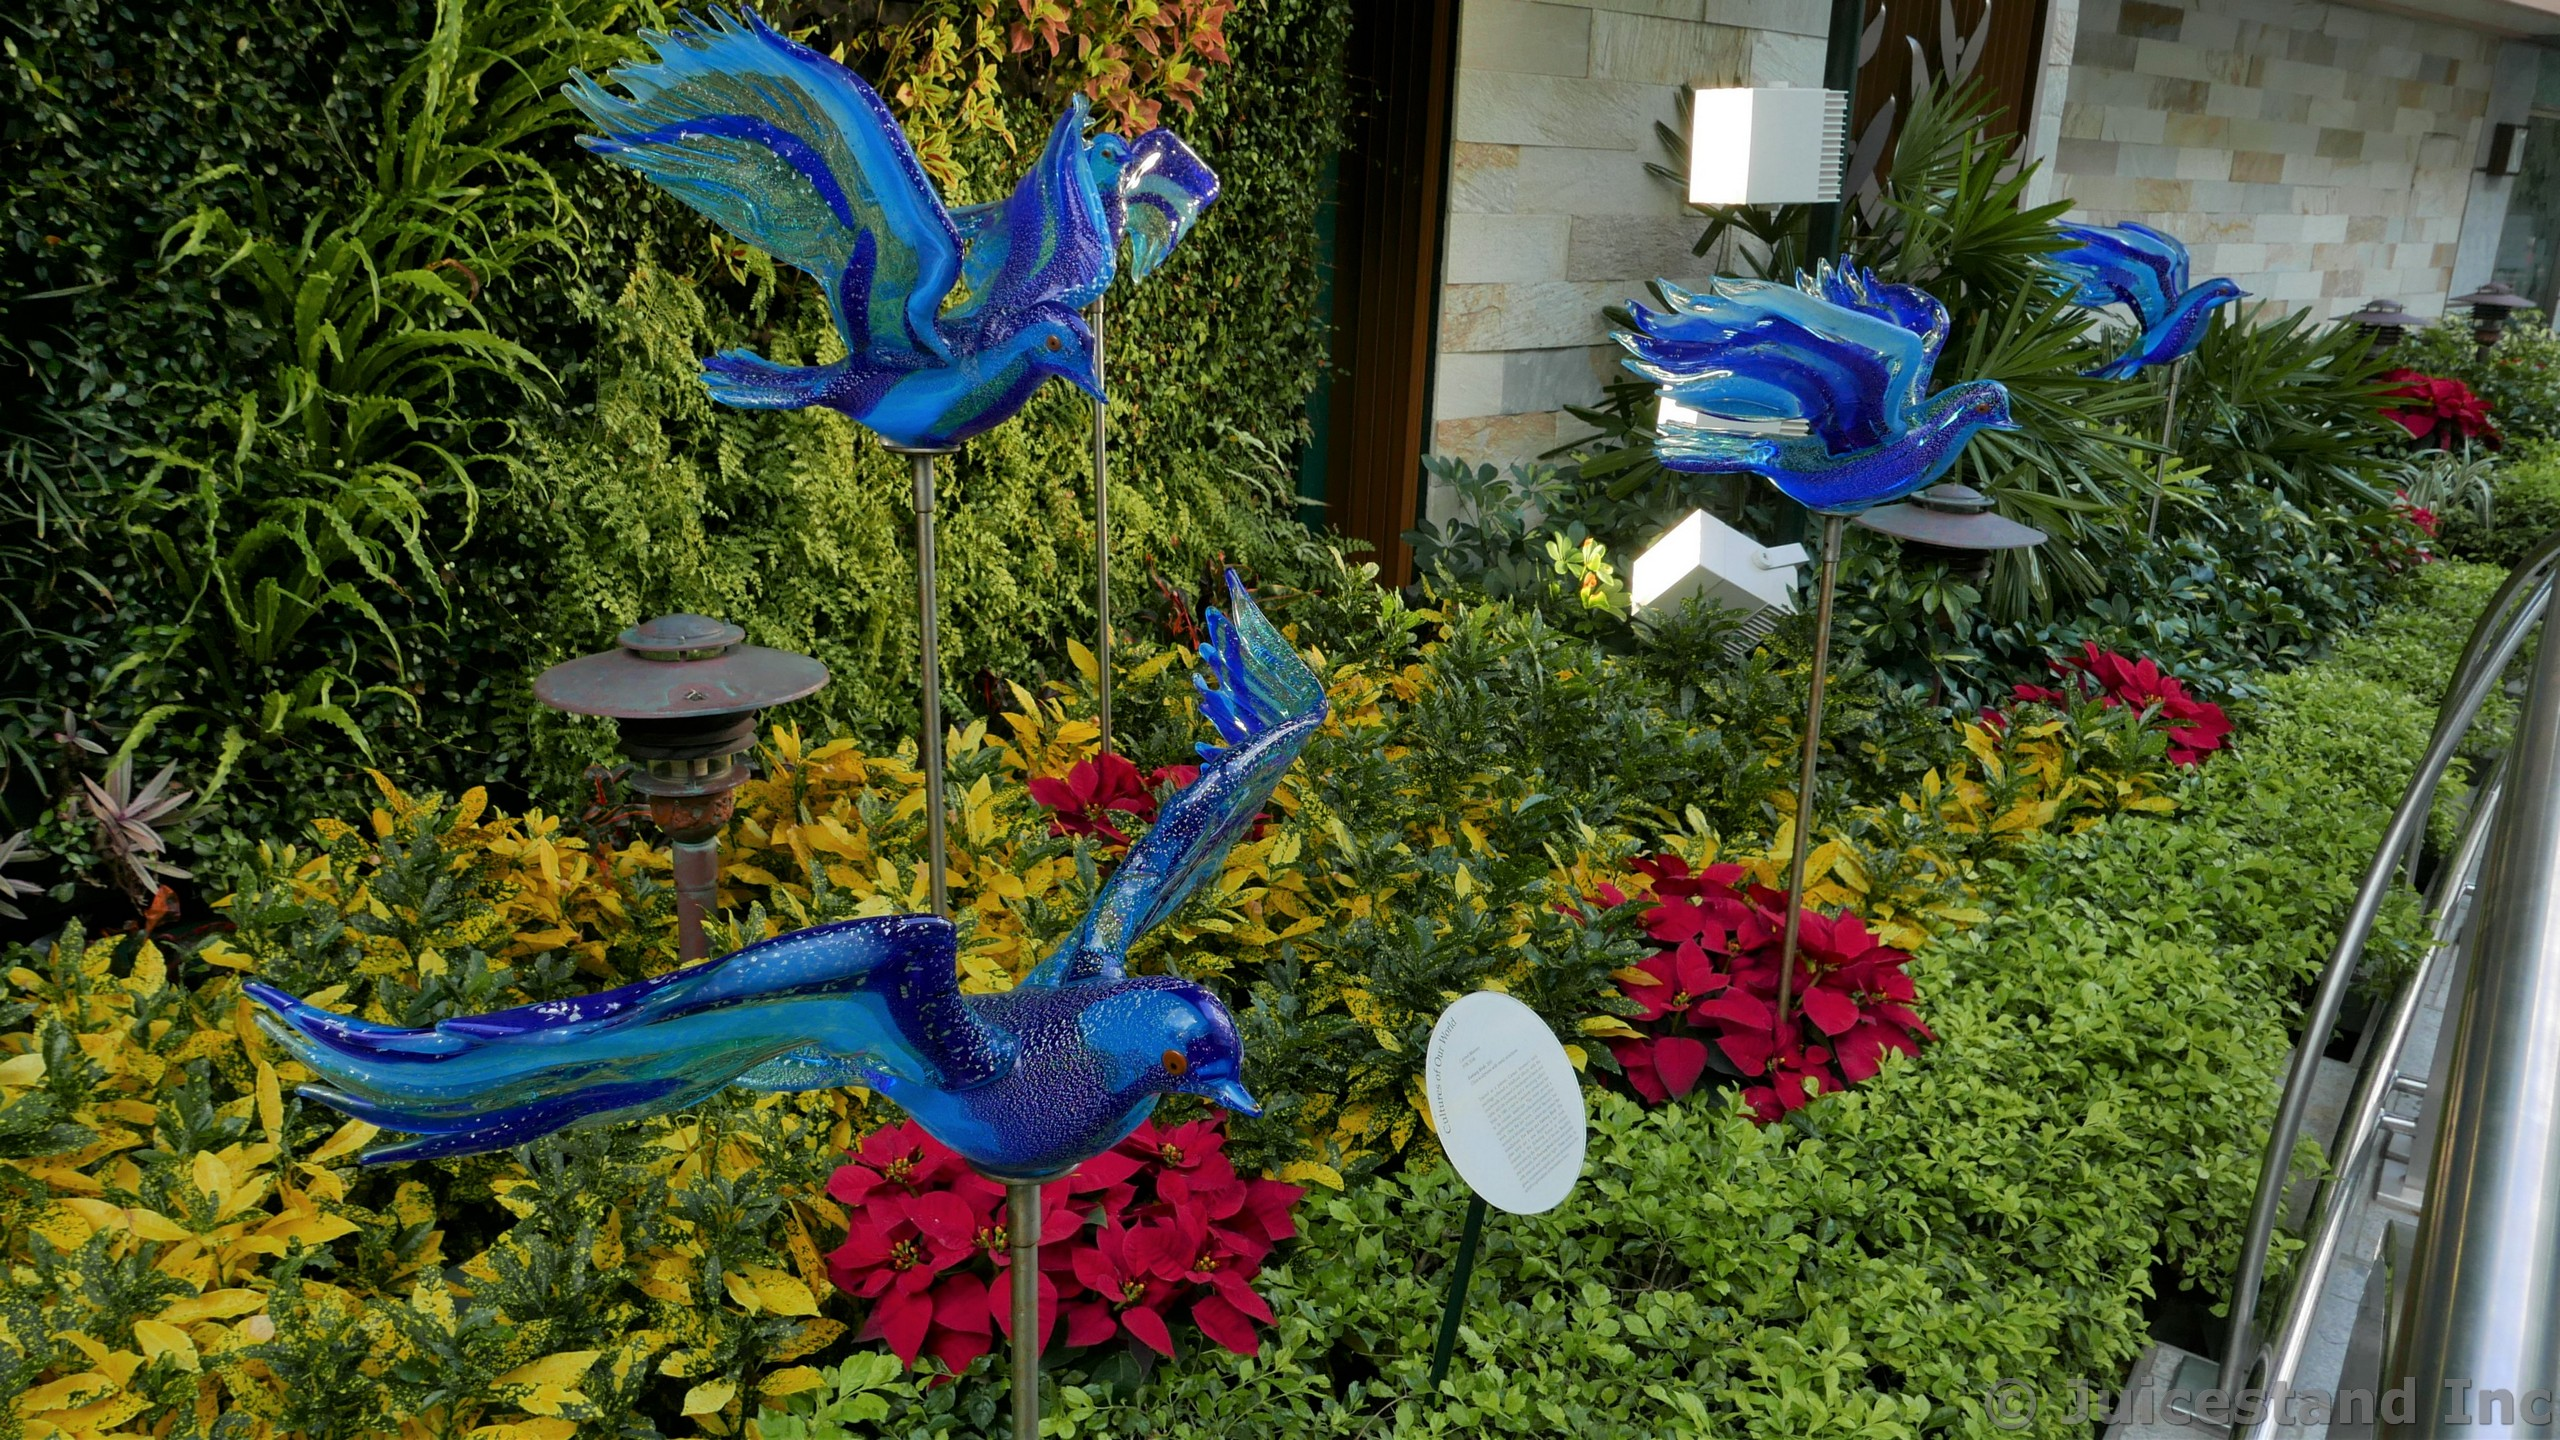 Fantasy Birds Blue Glass Sculptures by Carmel Mooney at Central Park Allure of the Seas